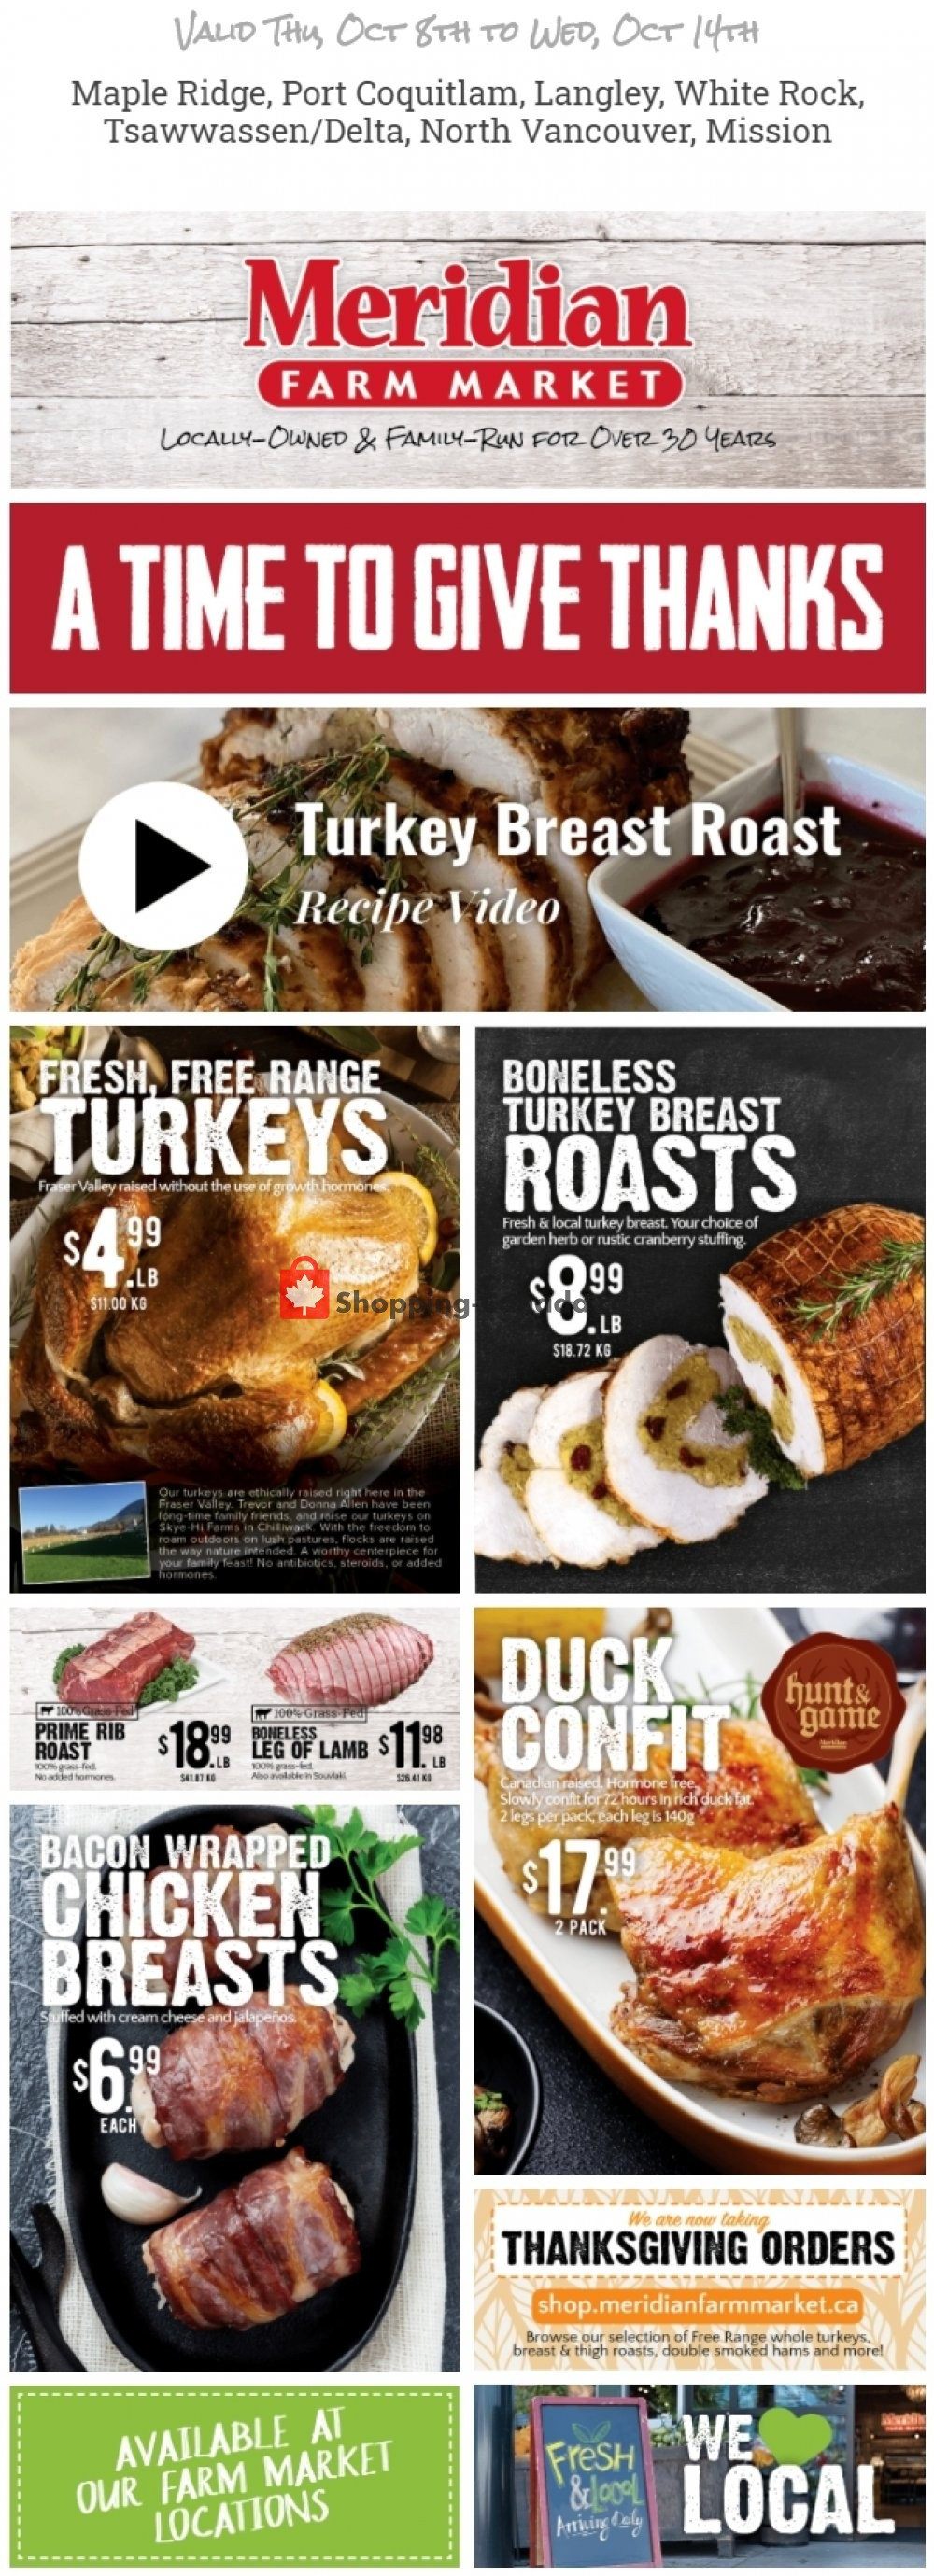 Flyer Meridian Meats & Meridian Farm Market Canada - from Thursday October 8, 2020 to Wednesday October 14, 2020